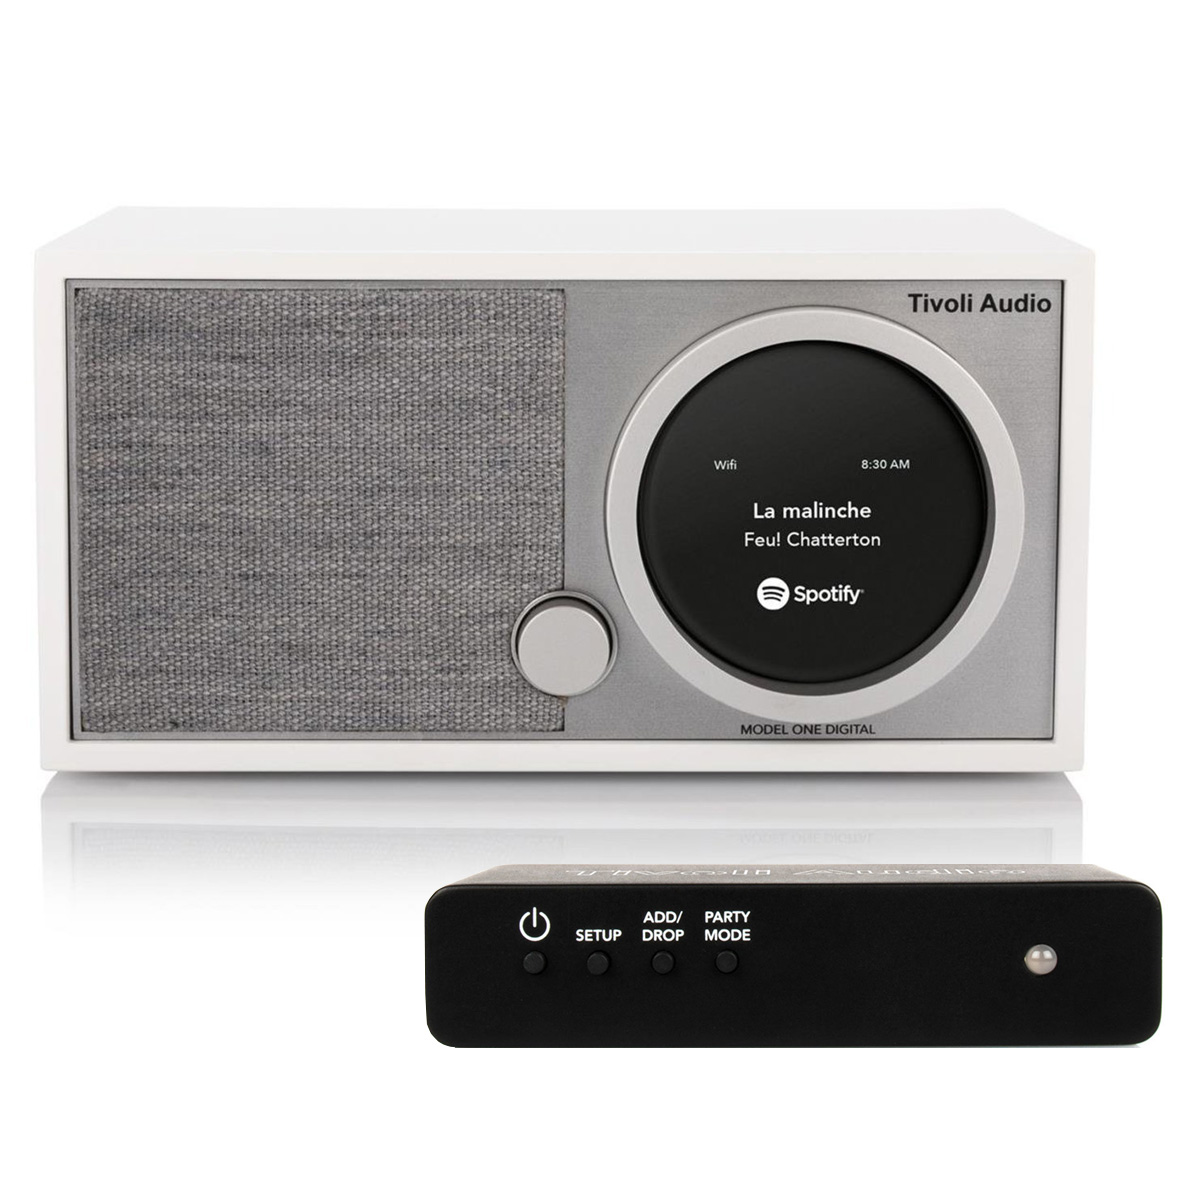 Tivoli Audio Model One Digital Radio with ConX Wireless Transmitter and Receiver by Tivoli Audio